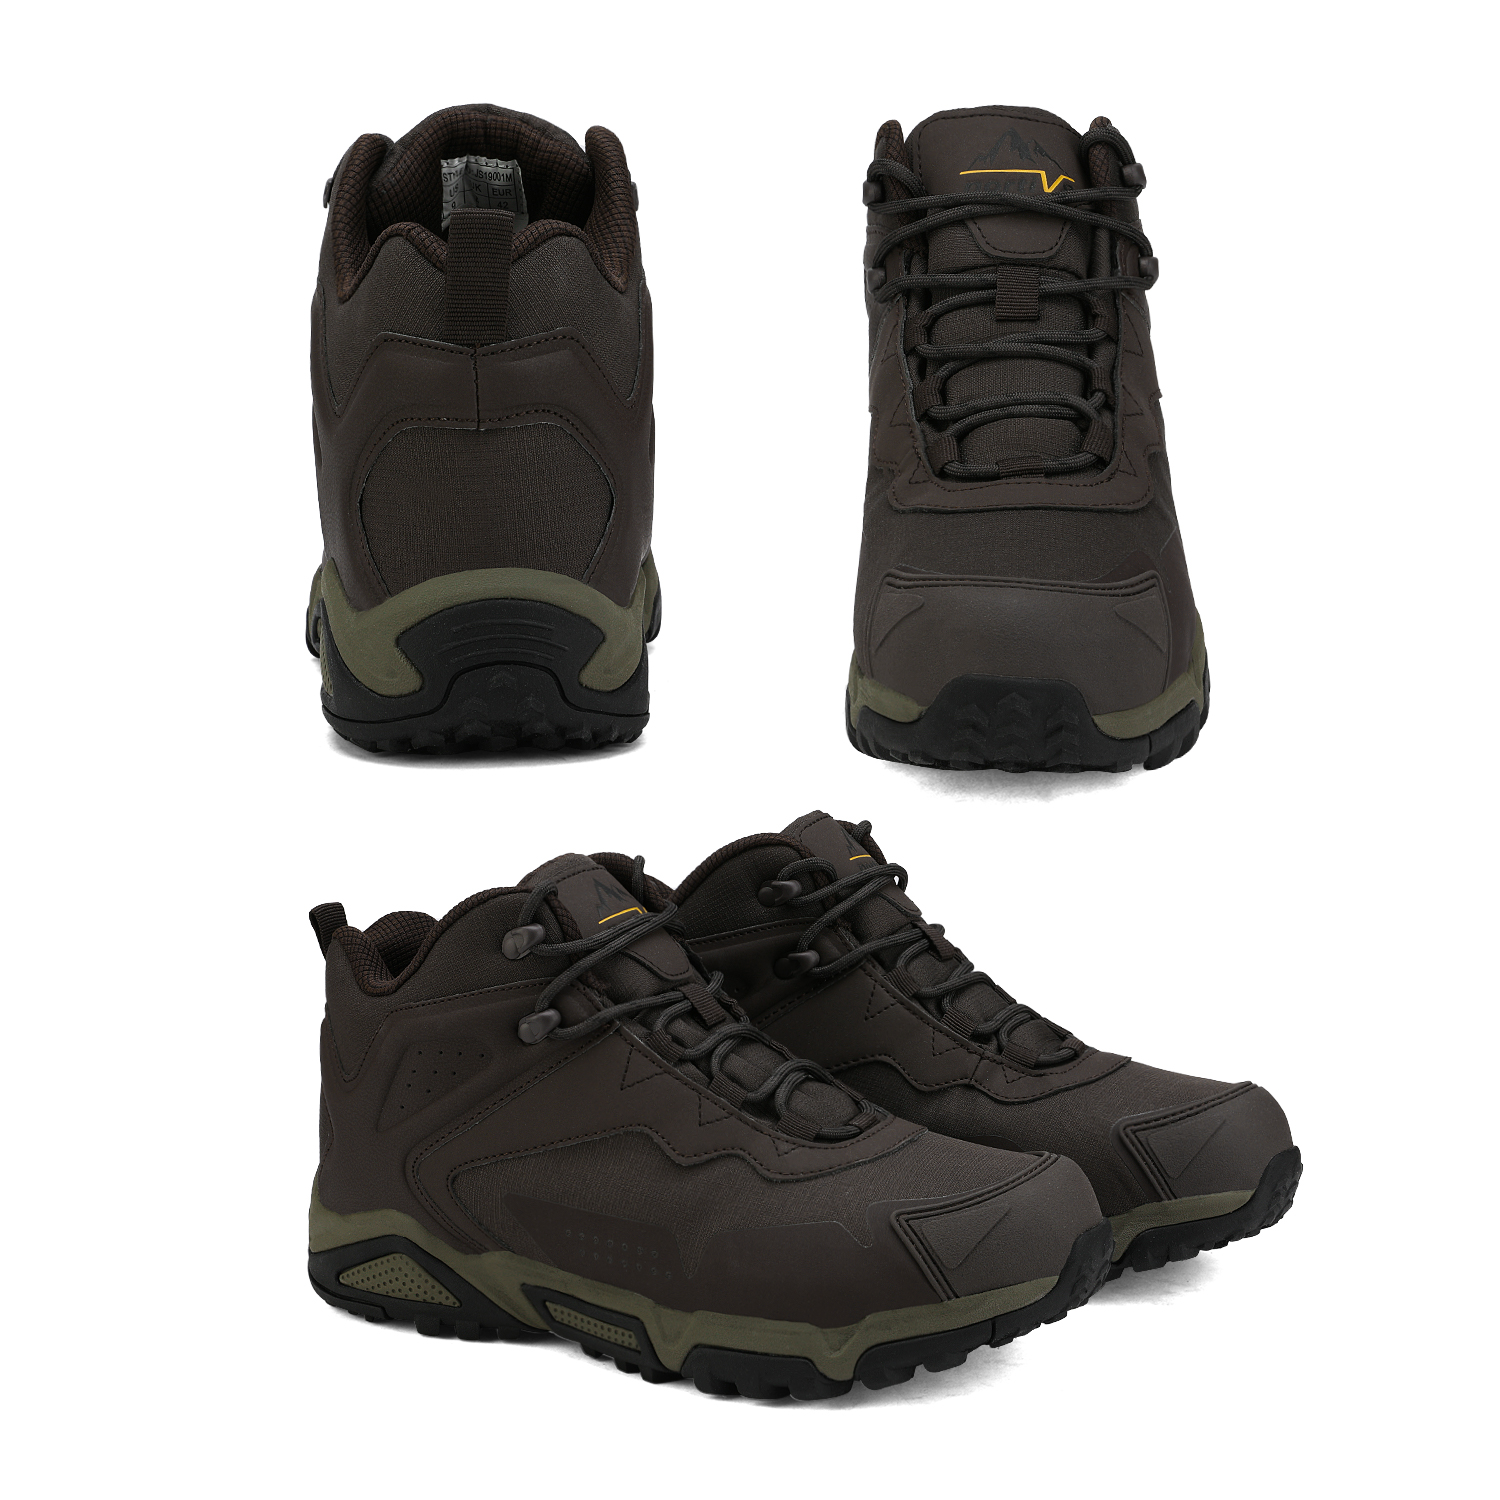 NORTIV-8-Men-039-s-Ankle-Waterproof-Hiking-Boots-Lightweight-Backpacking-Work-Shoes thumbnail 14